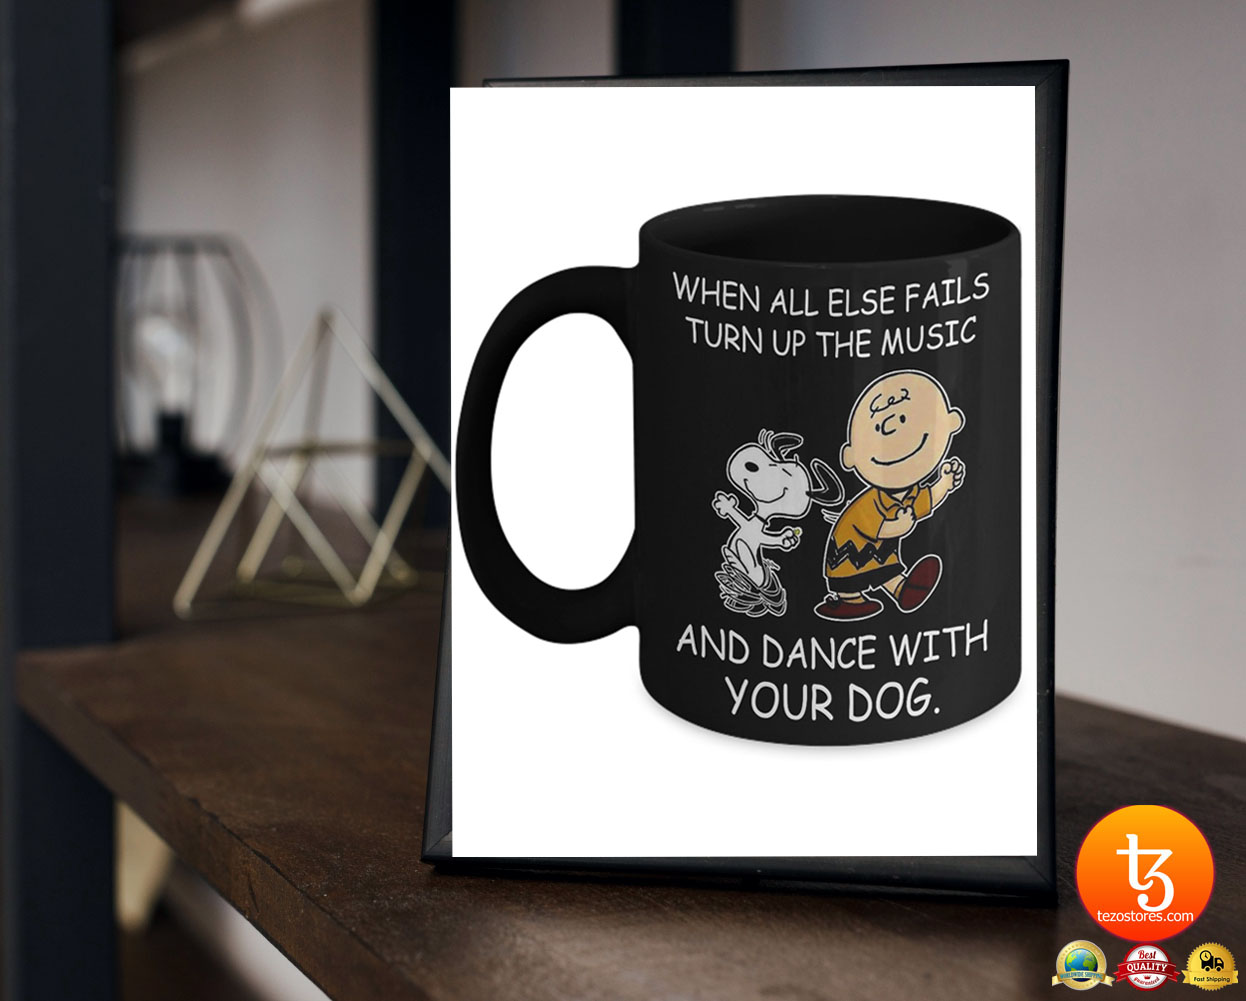 Peanut Snoopy When all else fails turn up the music and dance with your dog mug